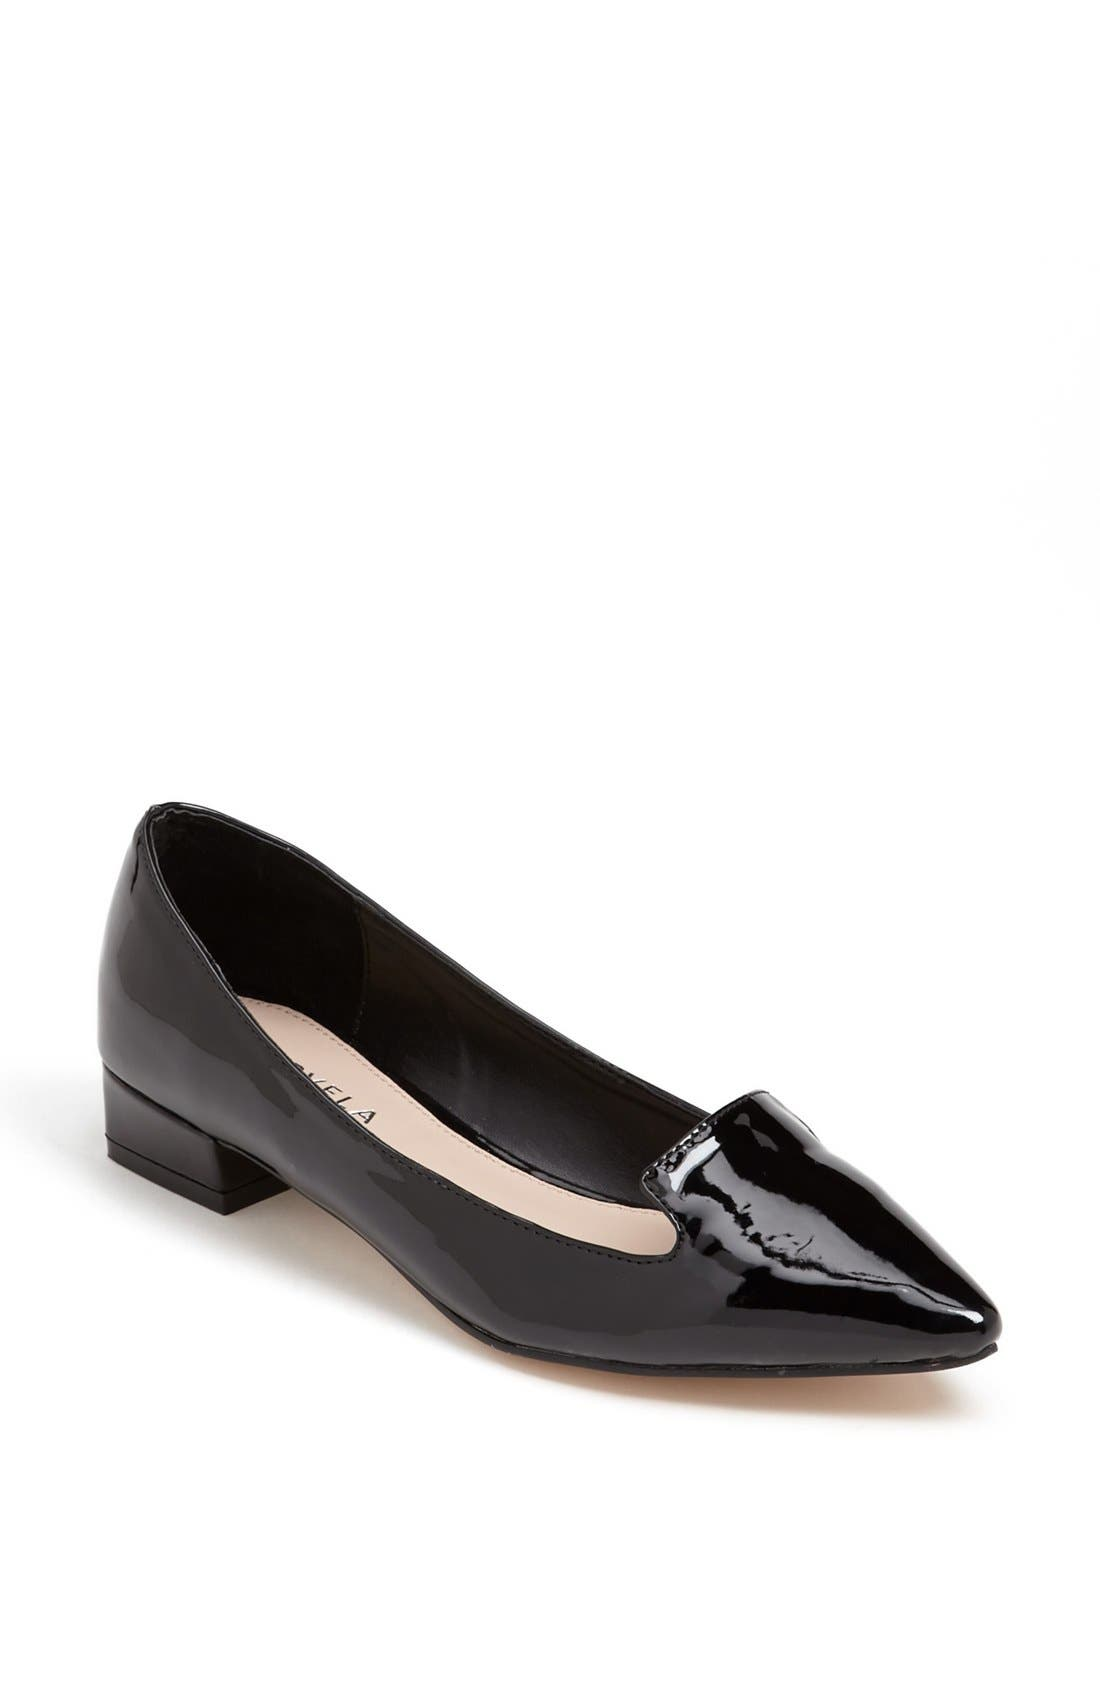 Alternate Image 1 Selected - Carvela Kurt Geiger 'Lizzie' Pointed Toe Flat